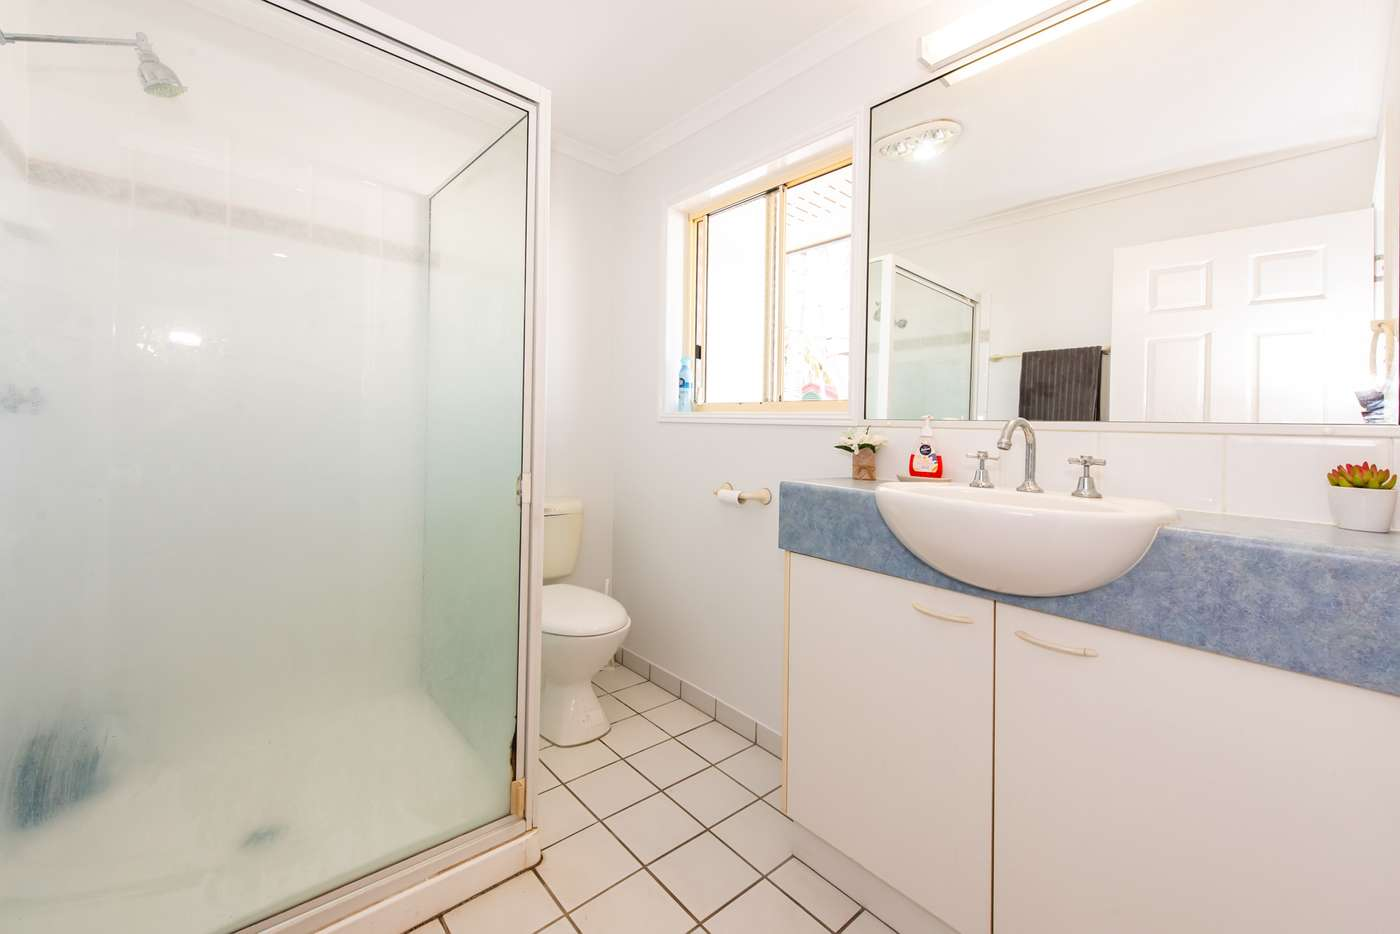 Sixth view of Homely house listing, 4 Pandanus Street, Beaconsfield QLD 4740